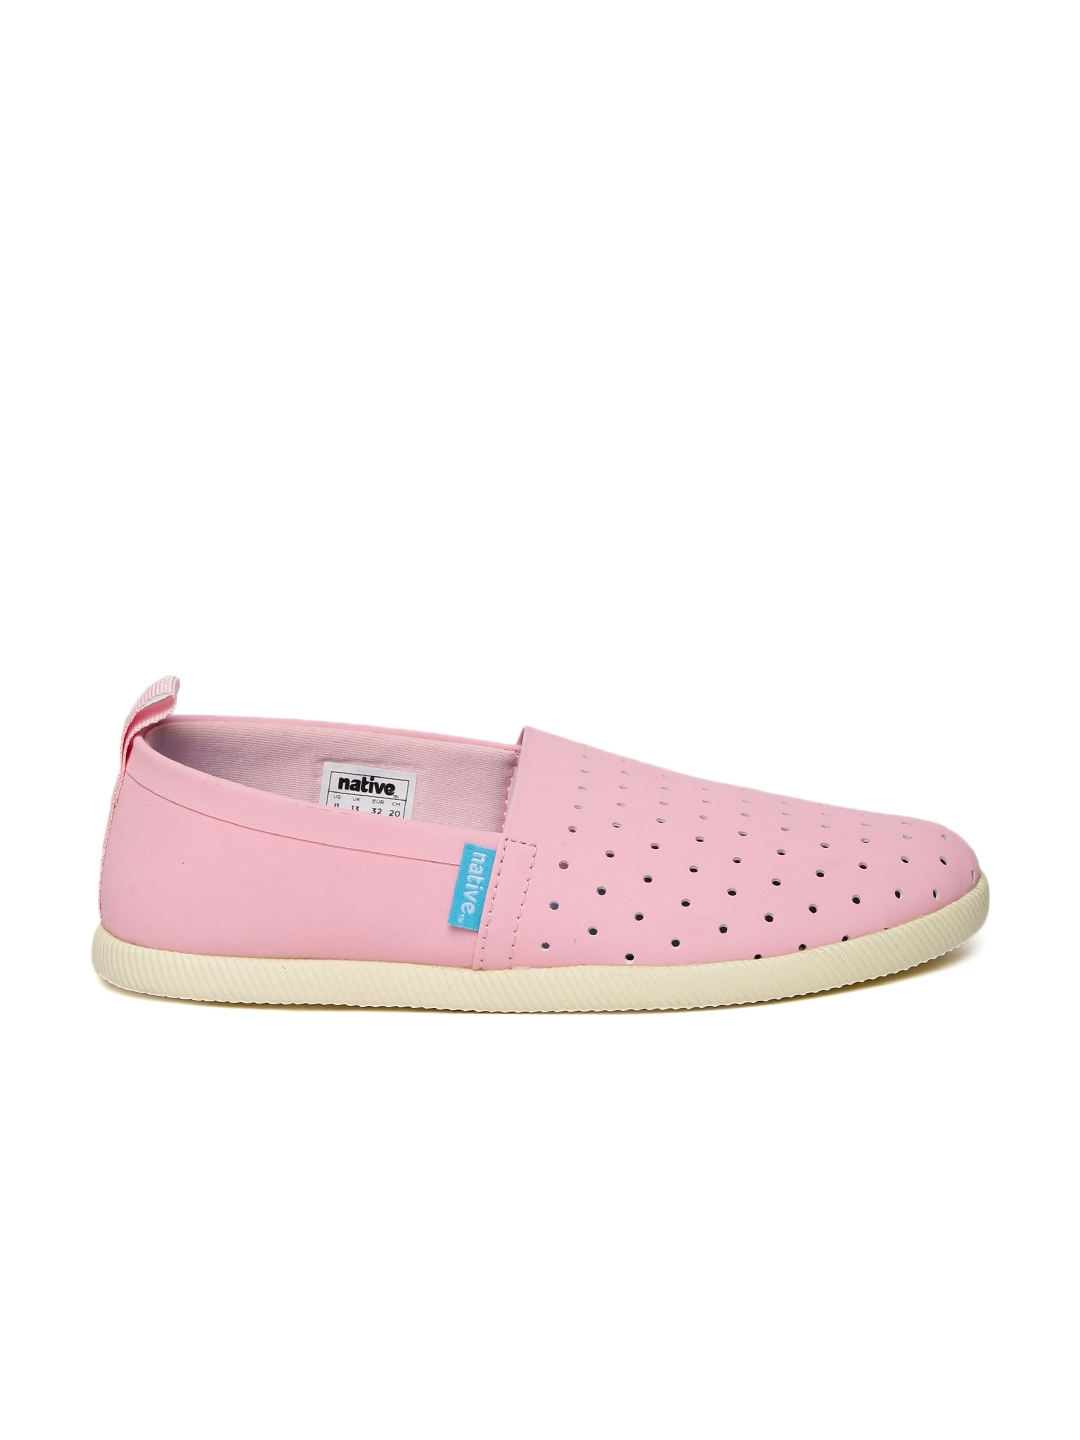 9a2e5c7fb2a Buy Native Shoes Girls Pink Venice Perforated Slip On Sneakers ...